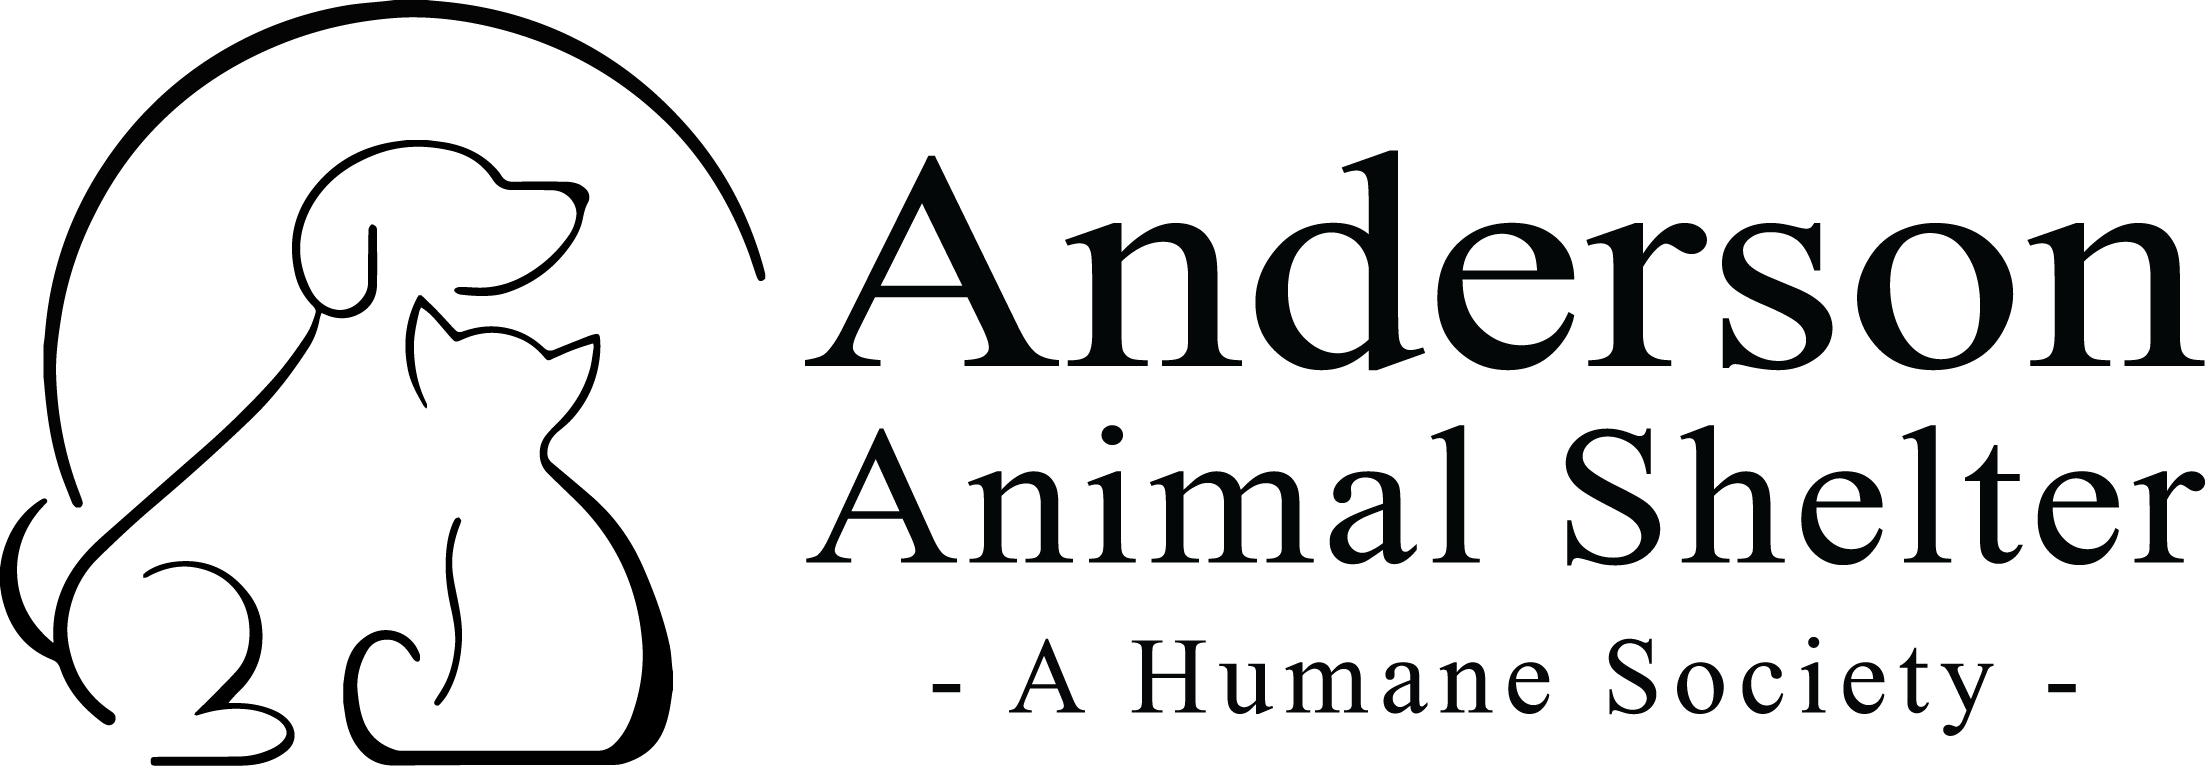 Bien-aimé Anderson Animal Shelter CN27